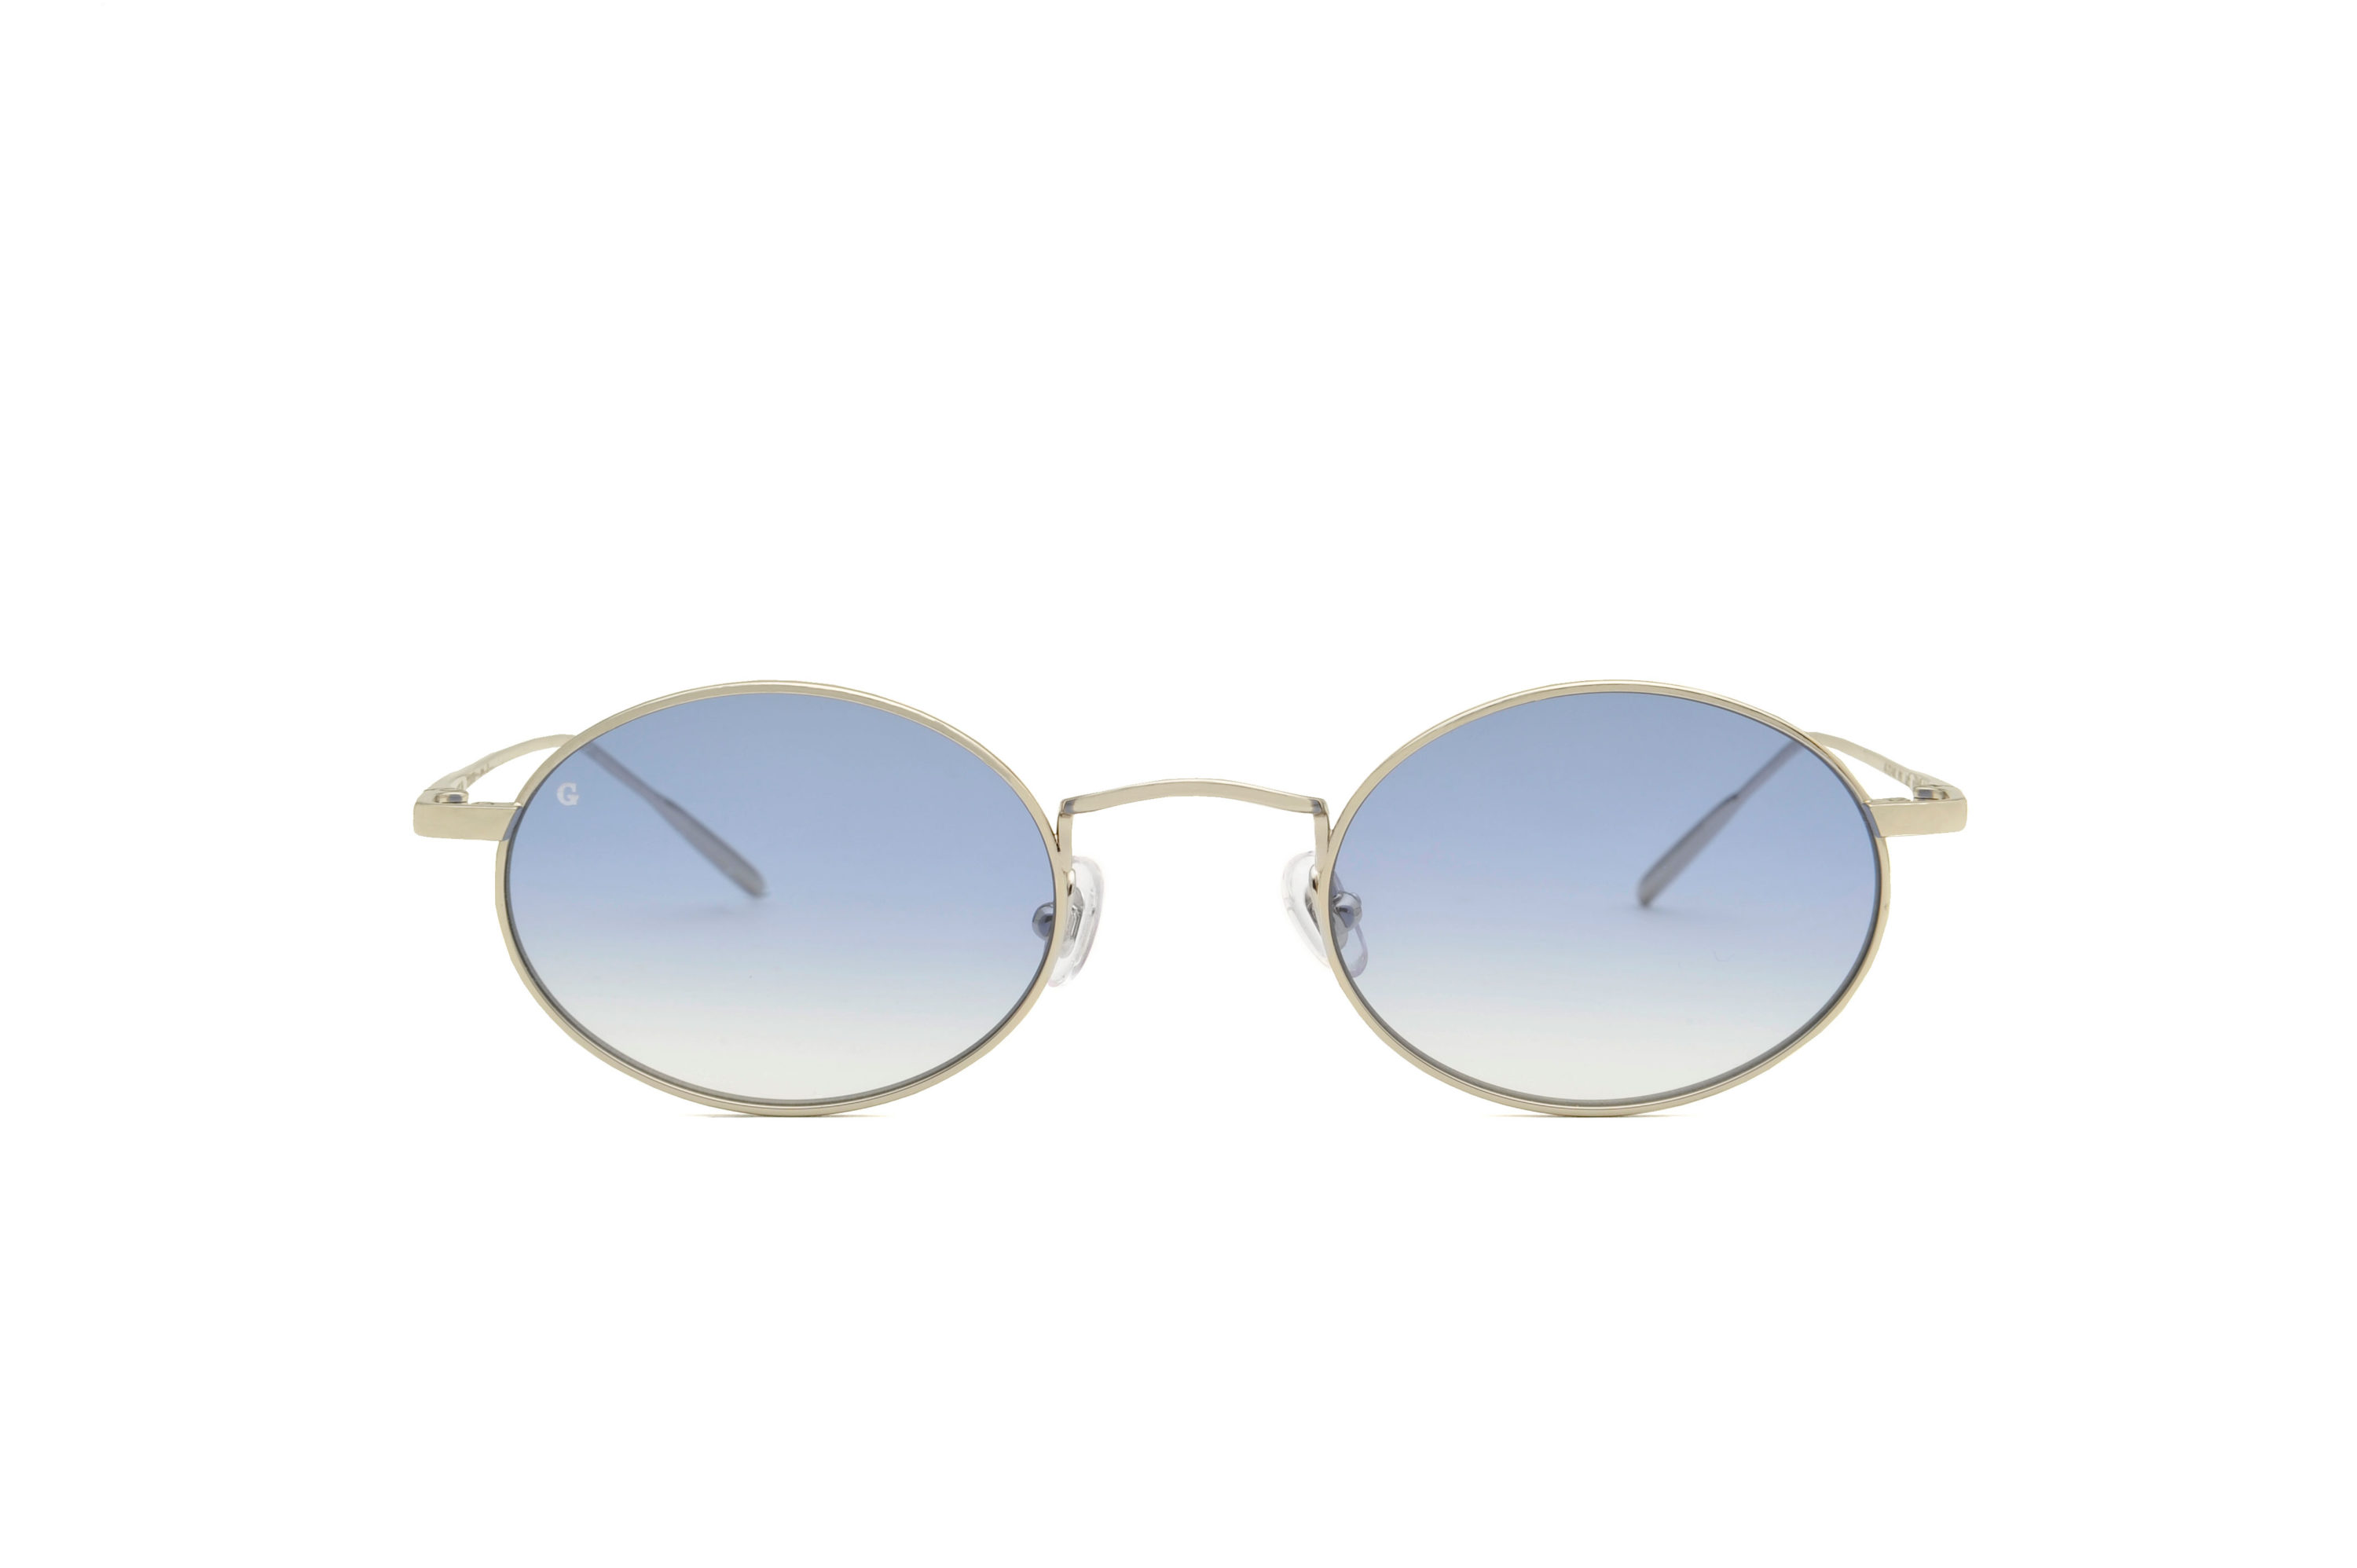 Roma metal rounded silver sunglasses by GIGI Studios